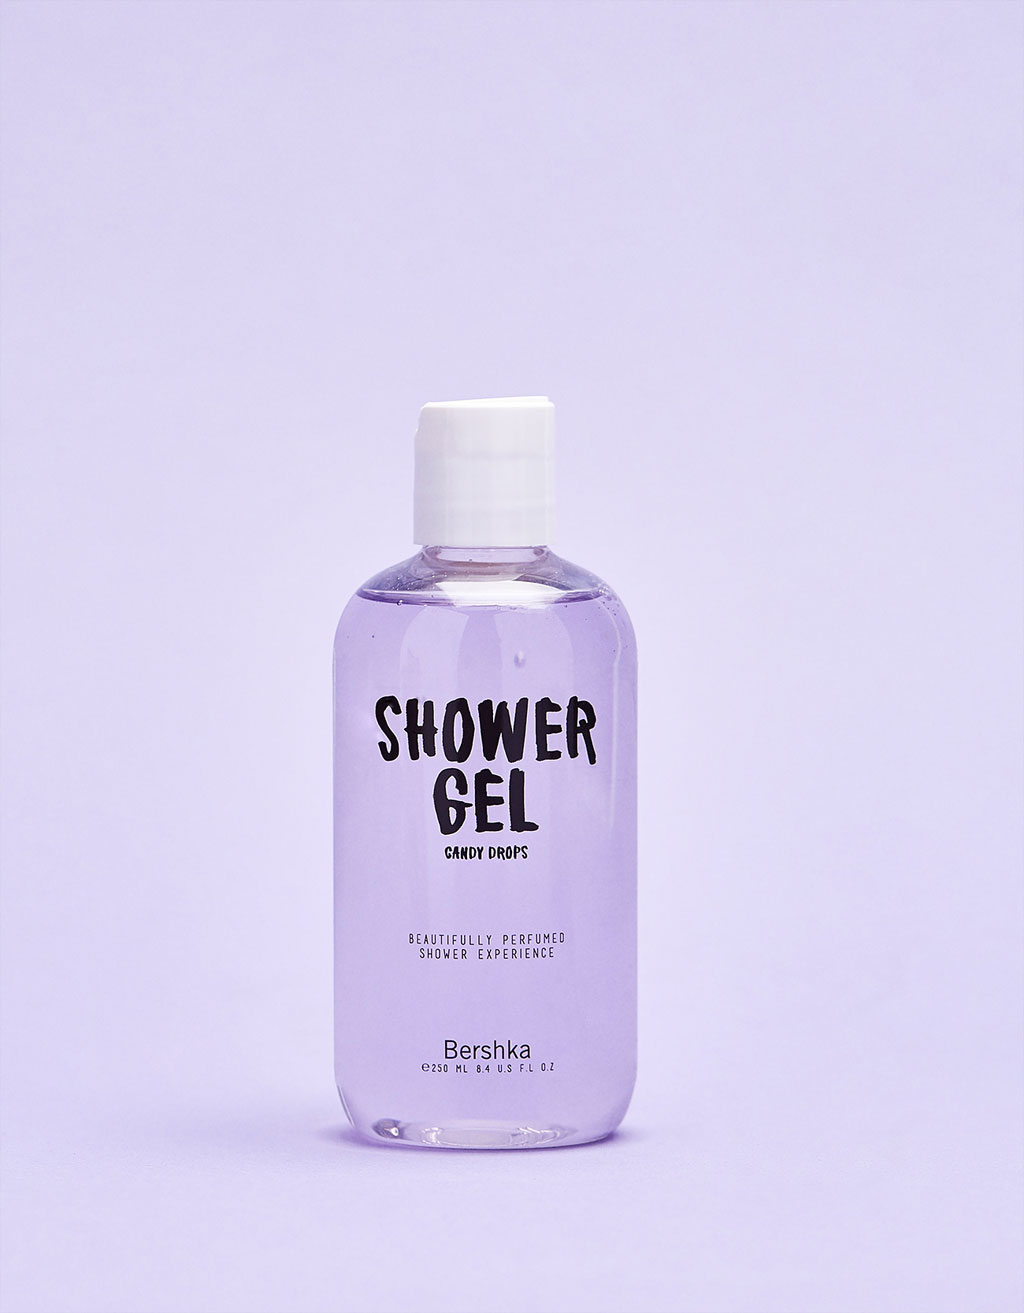 """Bershka"" dušo želė ""Candy Drops"" 250 ml"